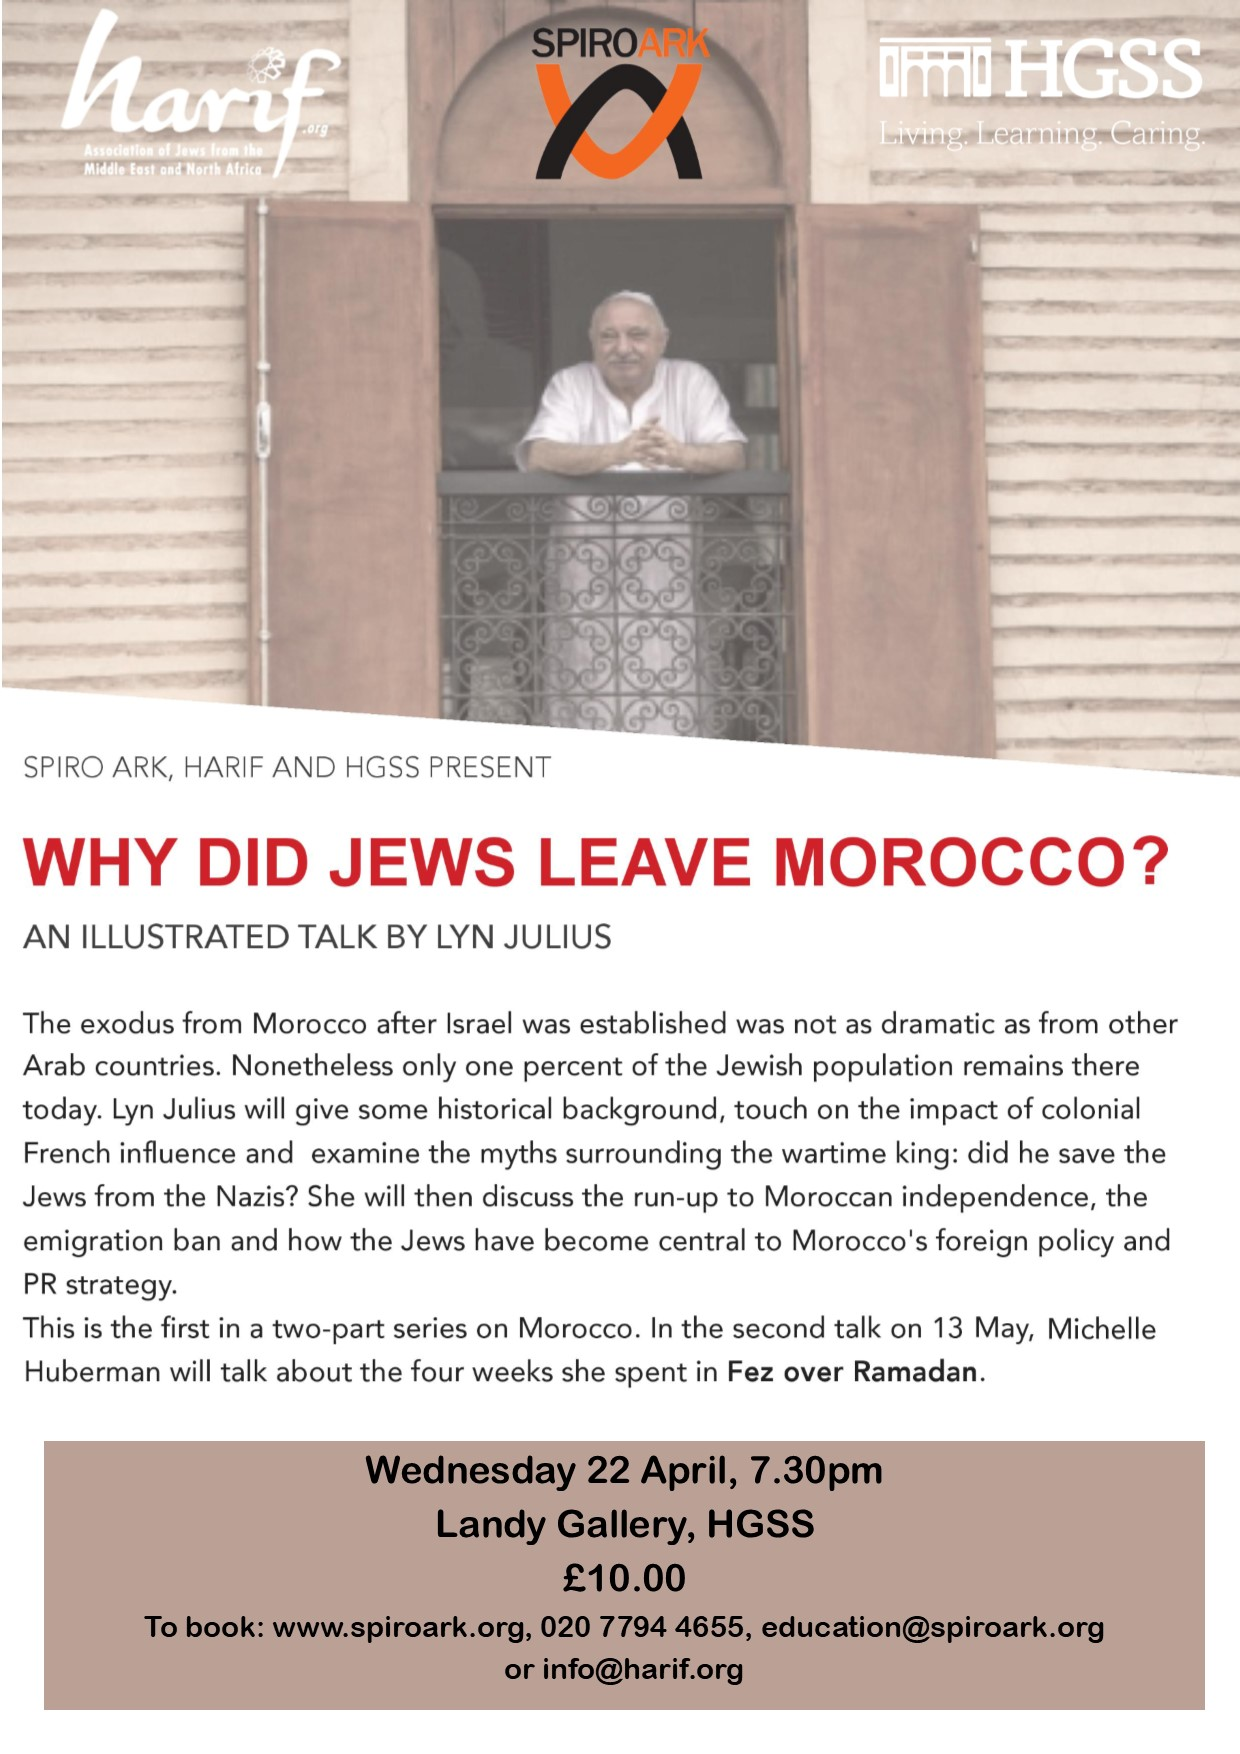 Spiro Ark - Why did Jews leave Morocco? - Postponed @ The Landy Gallery